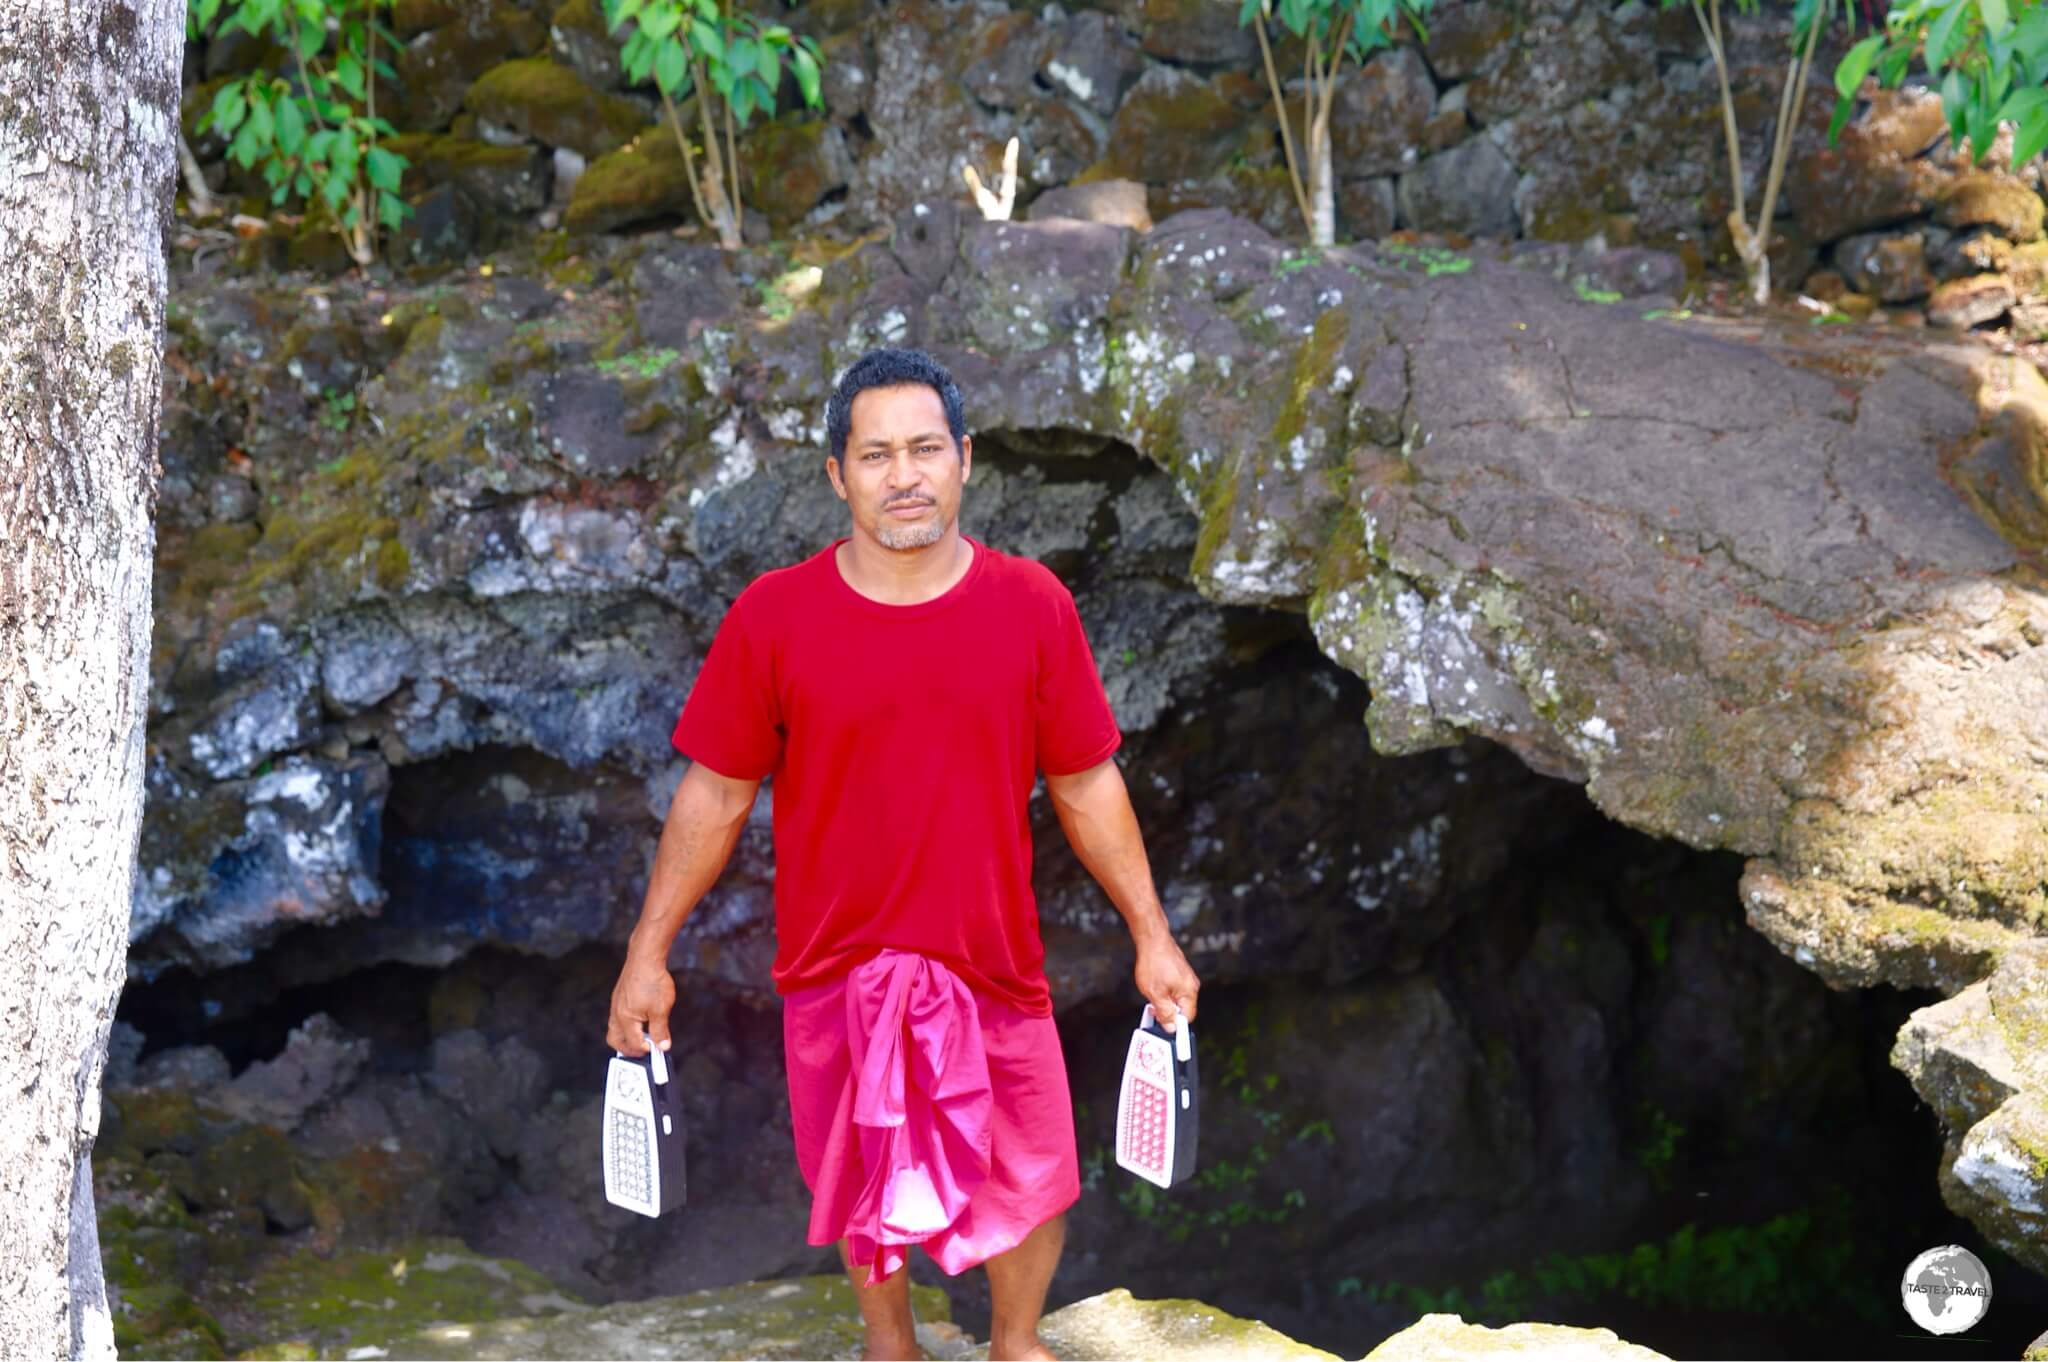 The custodian and my guide - Mati - at the entrance to PeaPea Cave.